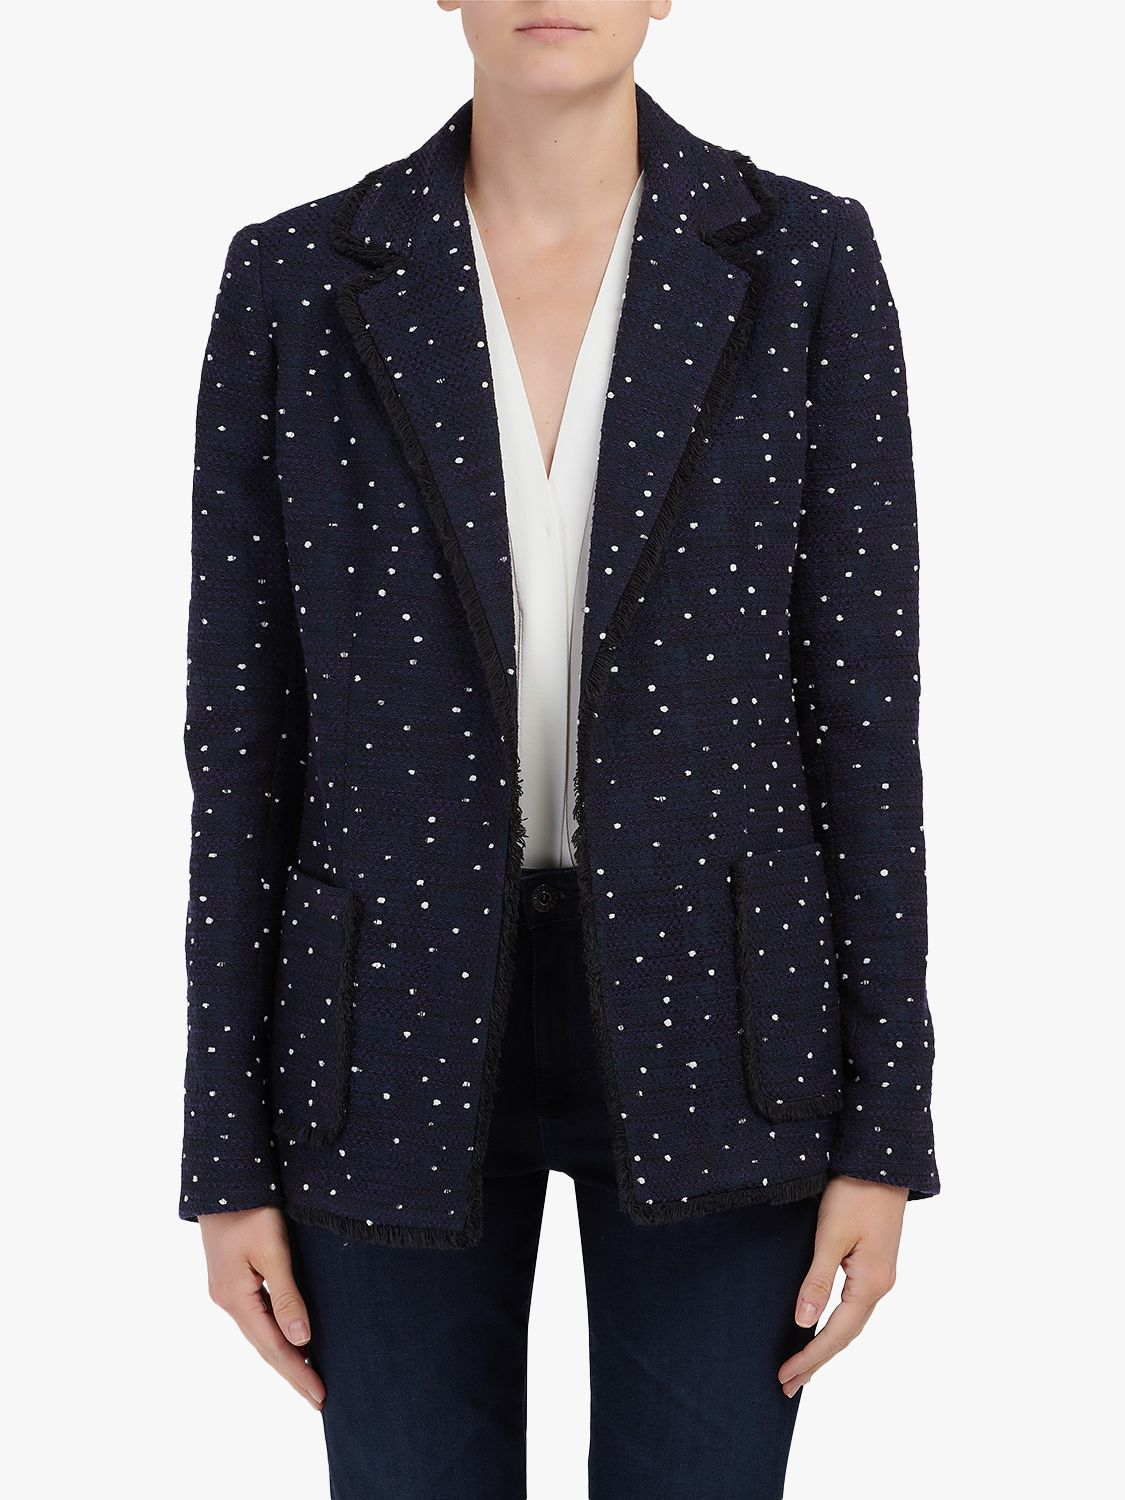 Helene For Denim Wardrobe Helene For Denim Wardrobe Edge To Edge Wool Blazer, Navy